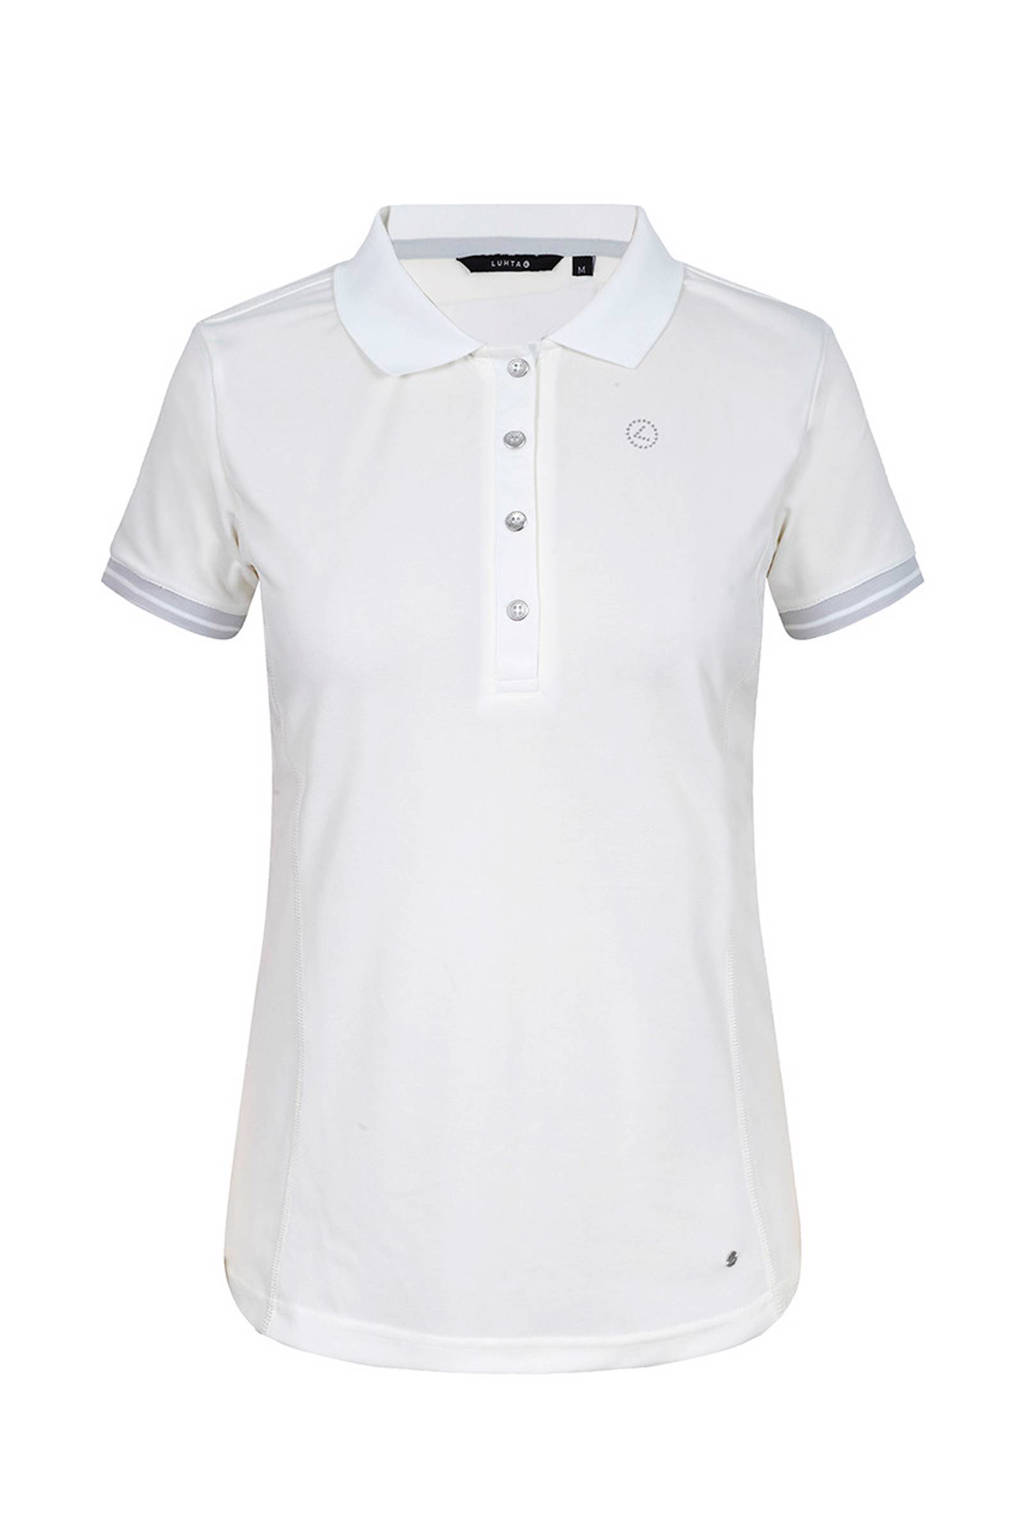 Luhta Aira outdoor polo wit, Creme